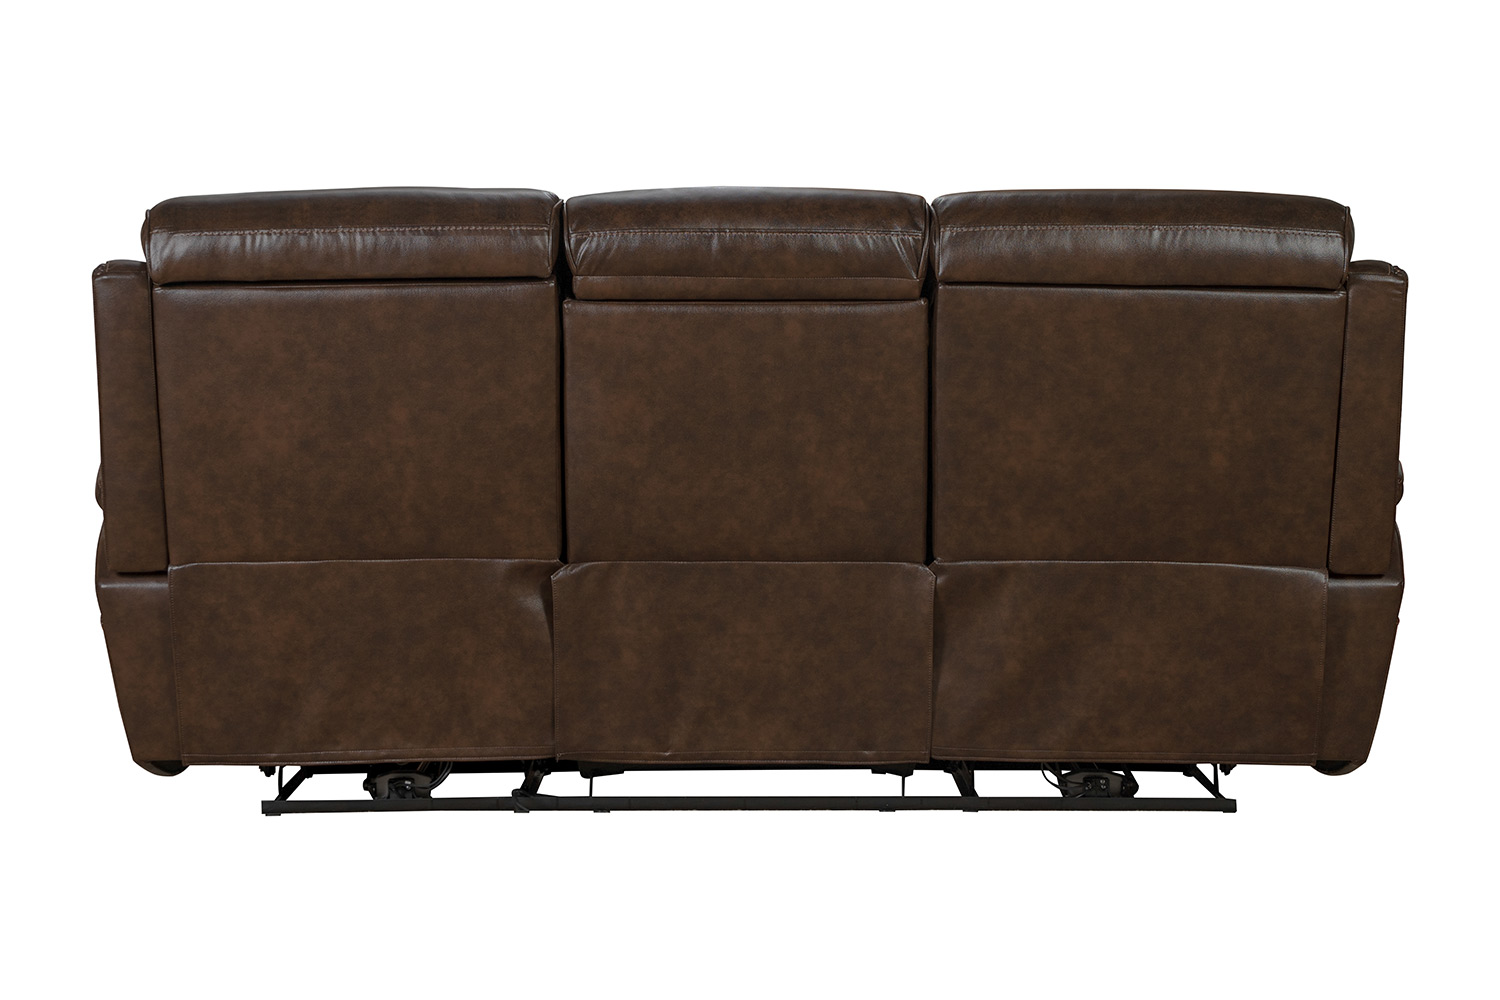 Barcalounger Sandover Power Reclining Sofa with Power Head Rests and Lumbar - Tri-Tone Chocolate/Leather match